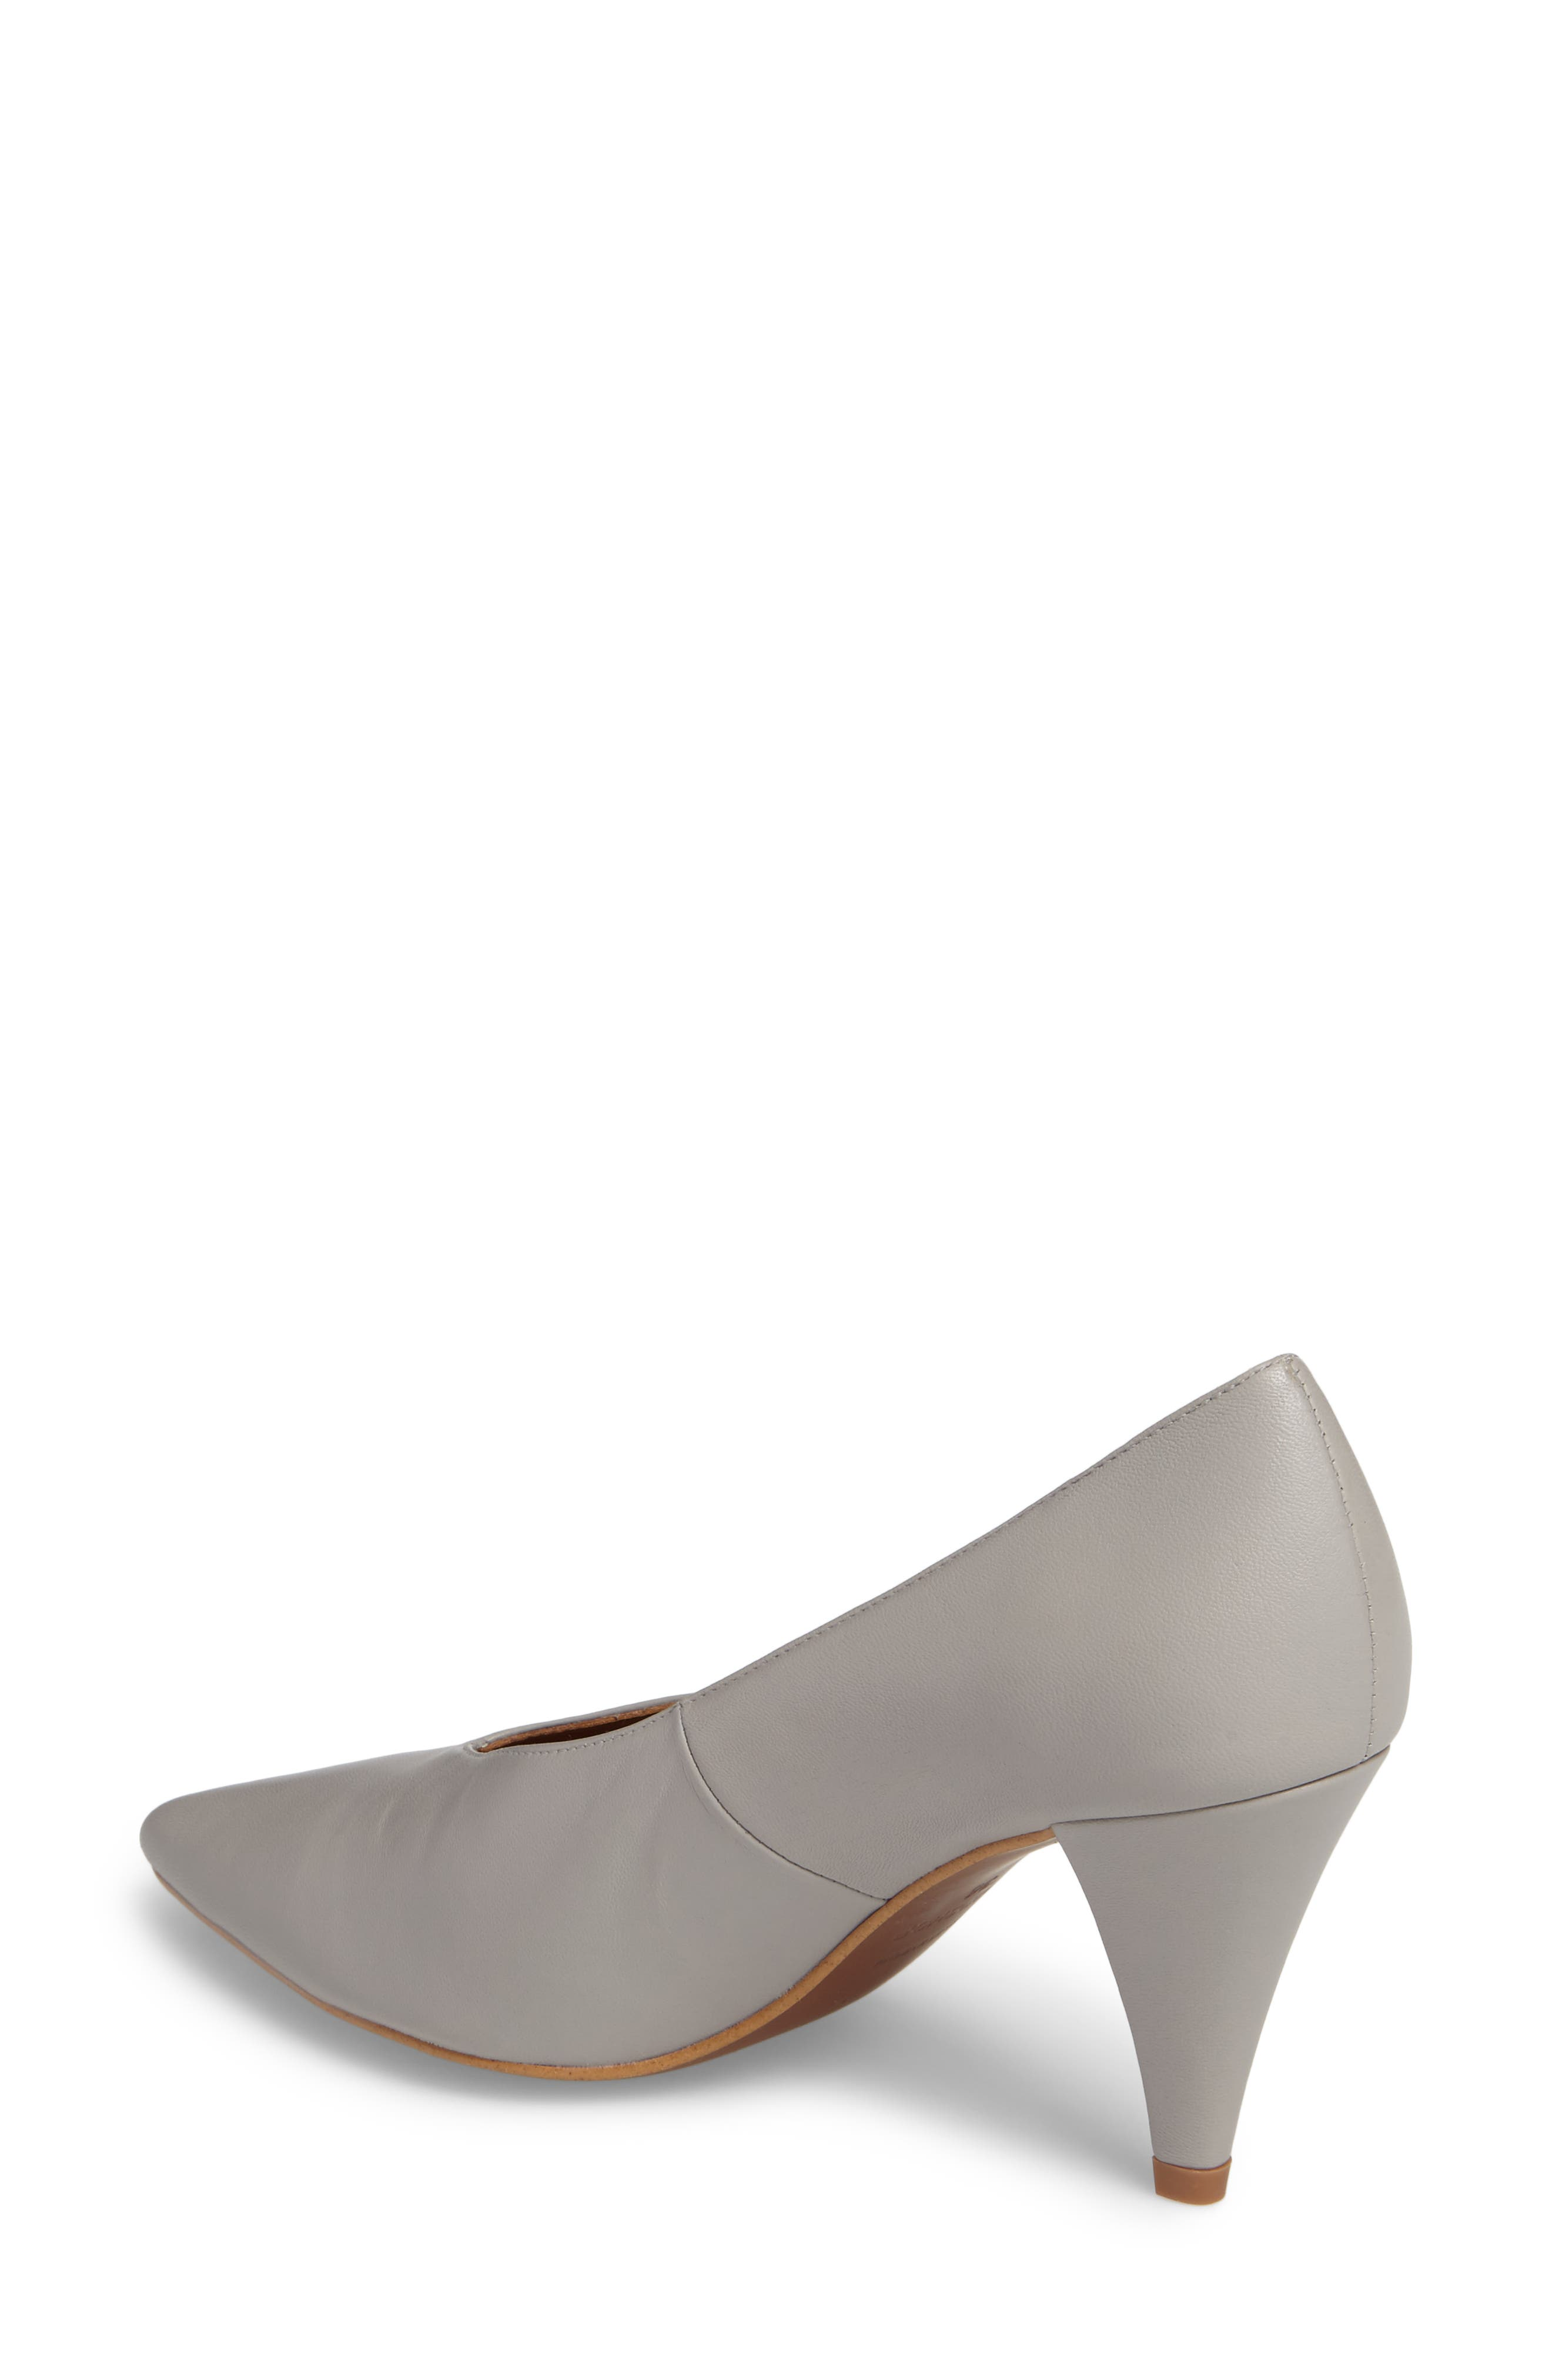 Journal Pointy Toe Pump,                             Alternate thumbnail 2, color,                             020